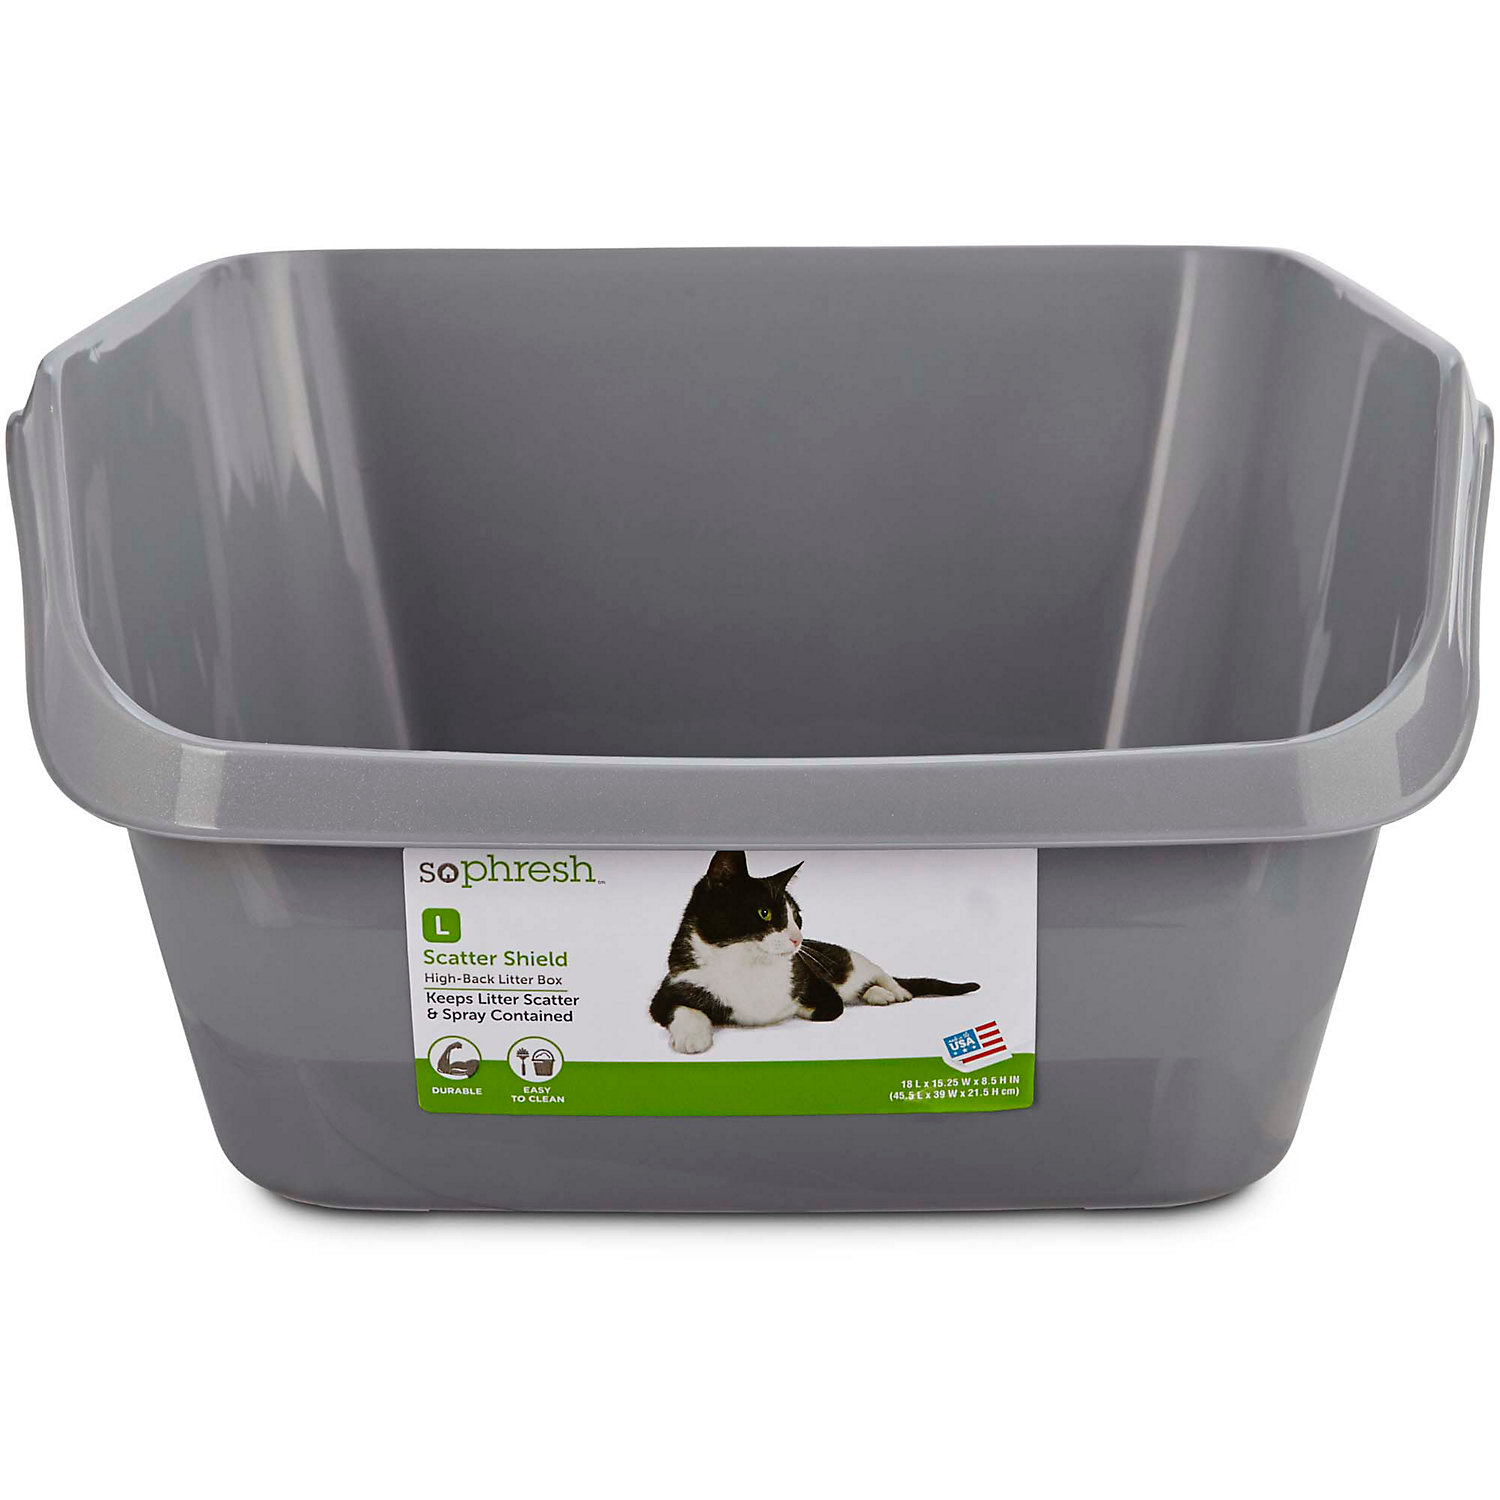 So Phresh Scatter Shield High-back Litter Box In Gray, 18.5 L X 15 W X 8.5 H, Large